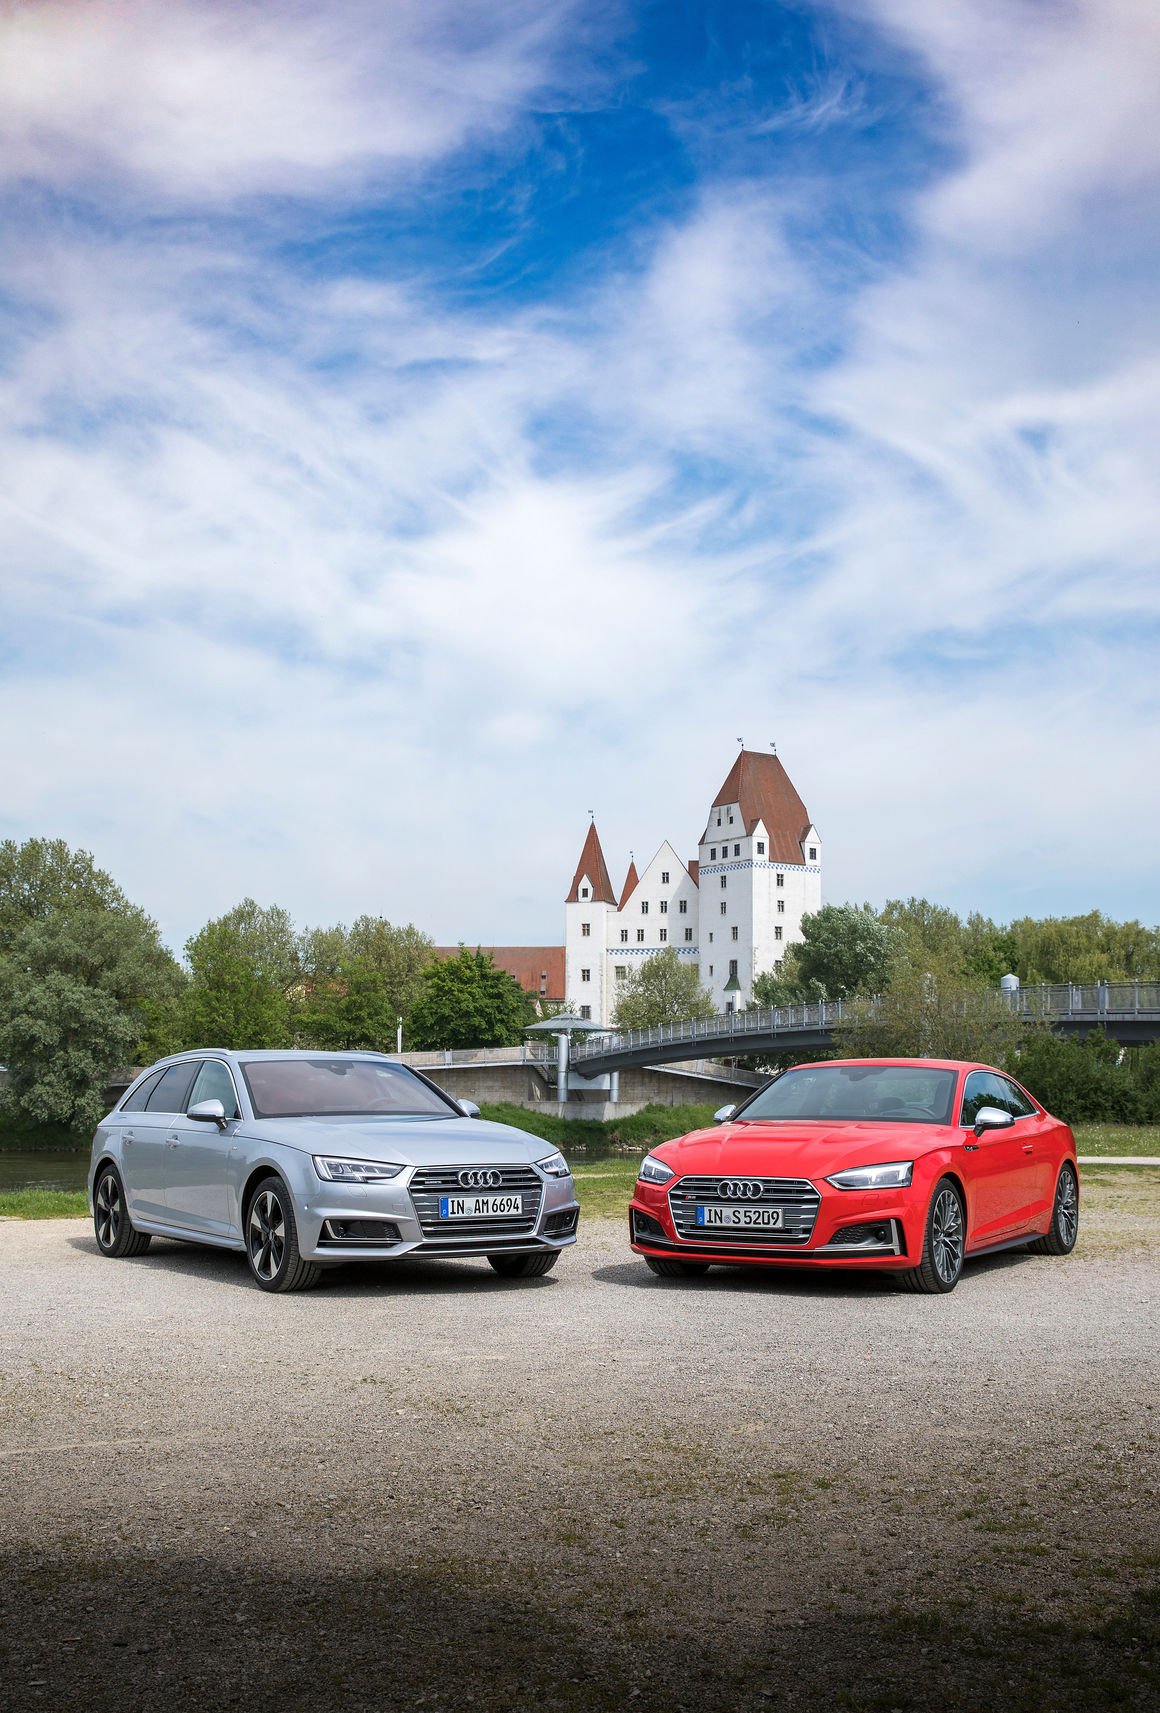 Audi A4 Coupe On The Road With The Audi A4 Avant And Audi S5 Coupé In Ingolstadt